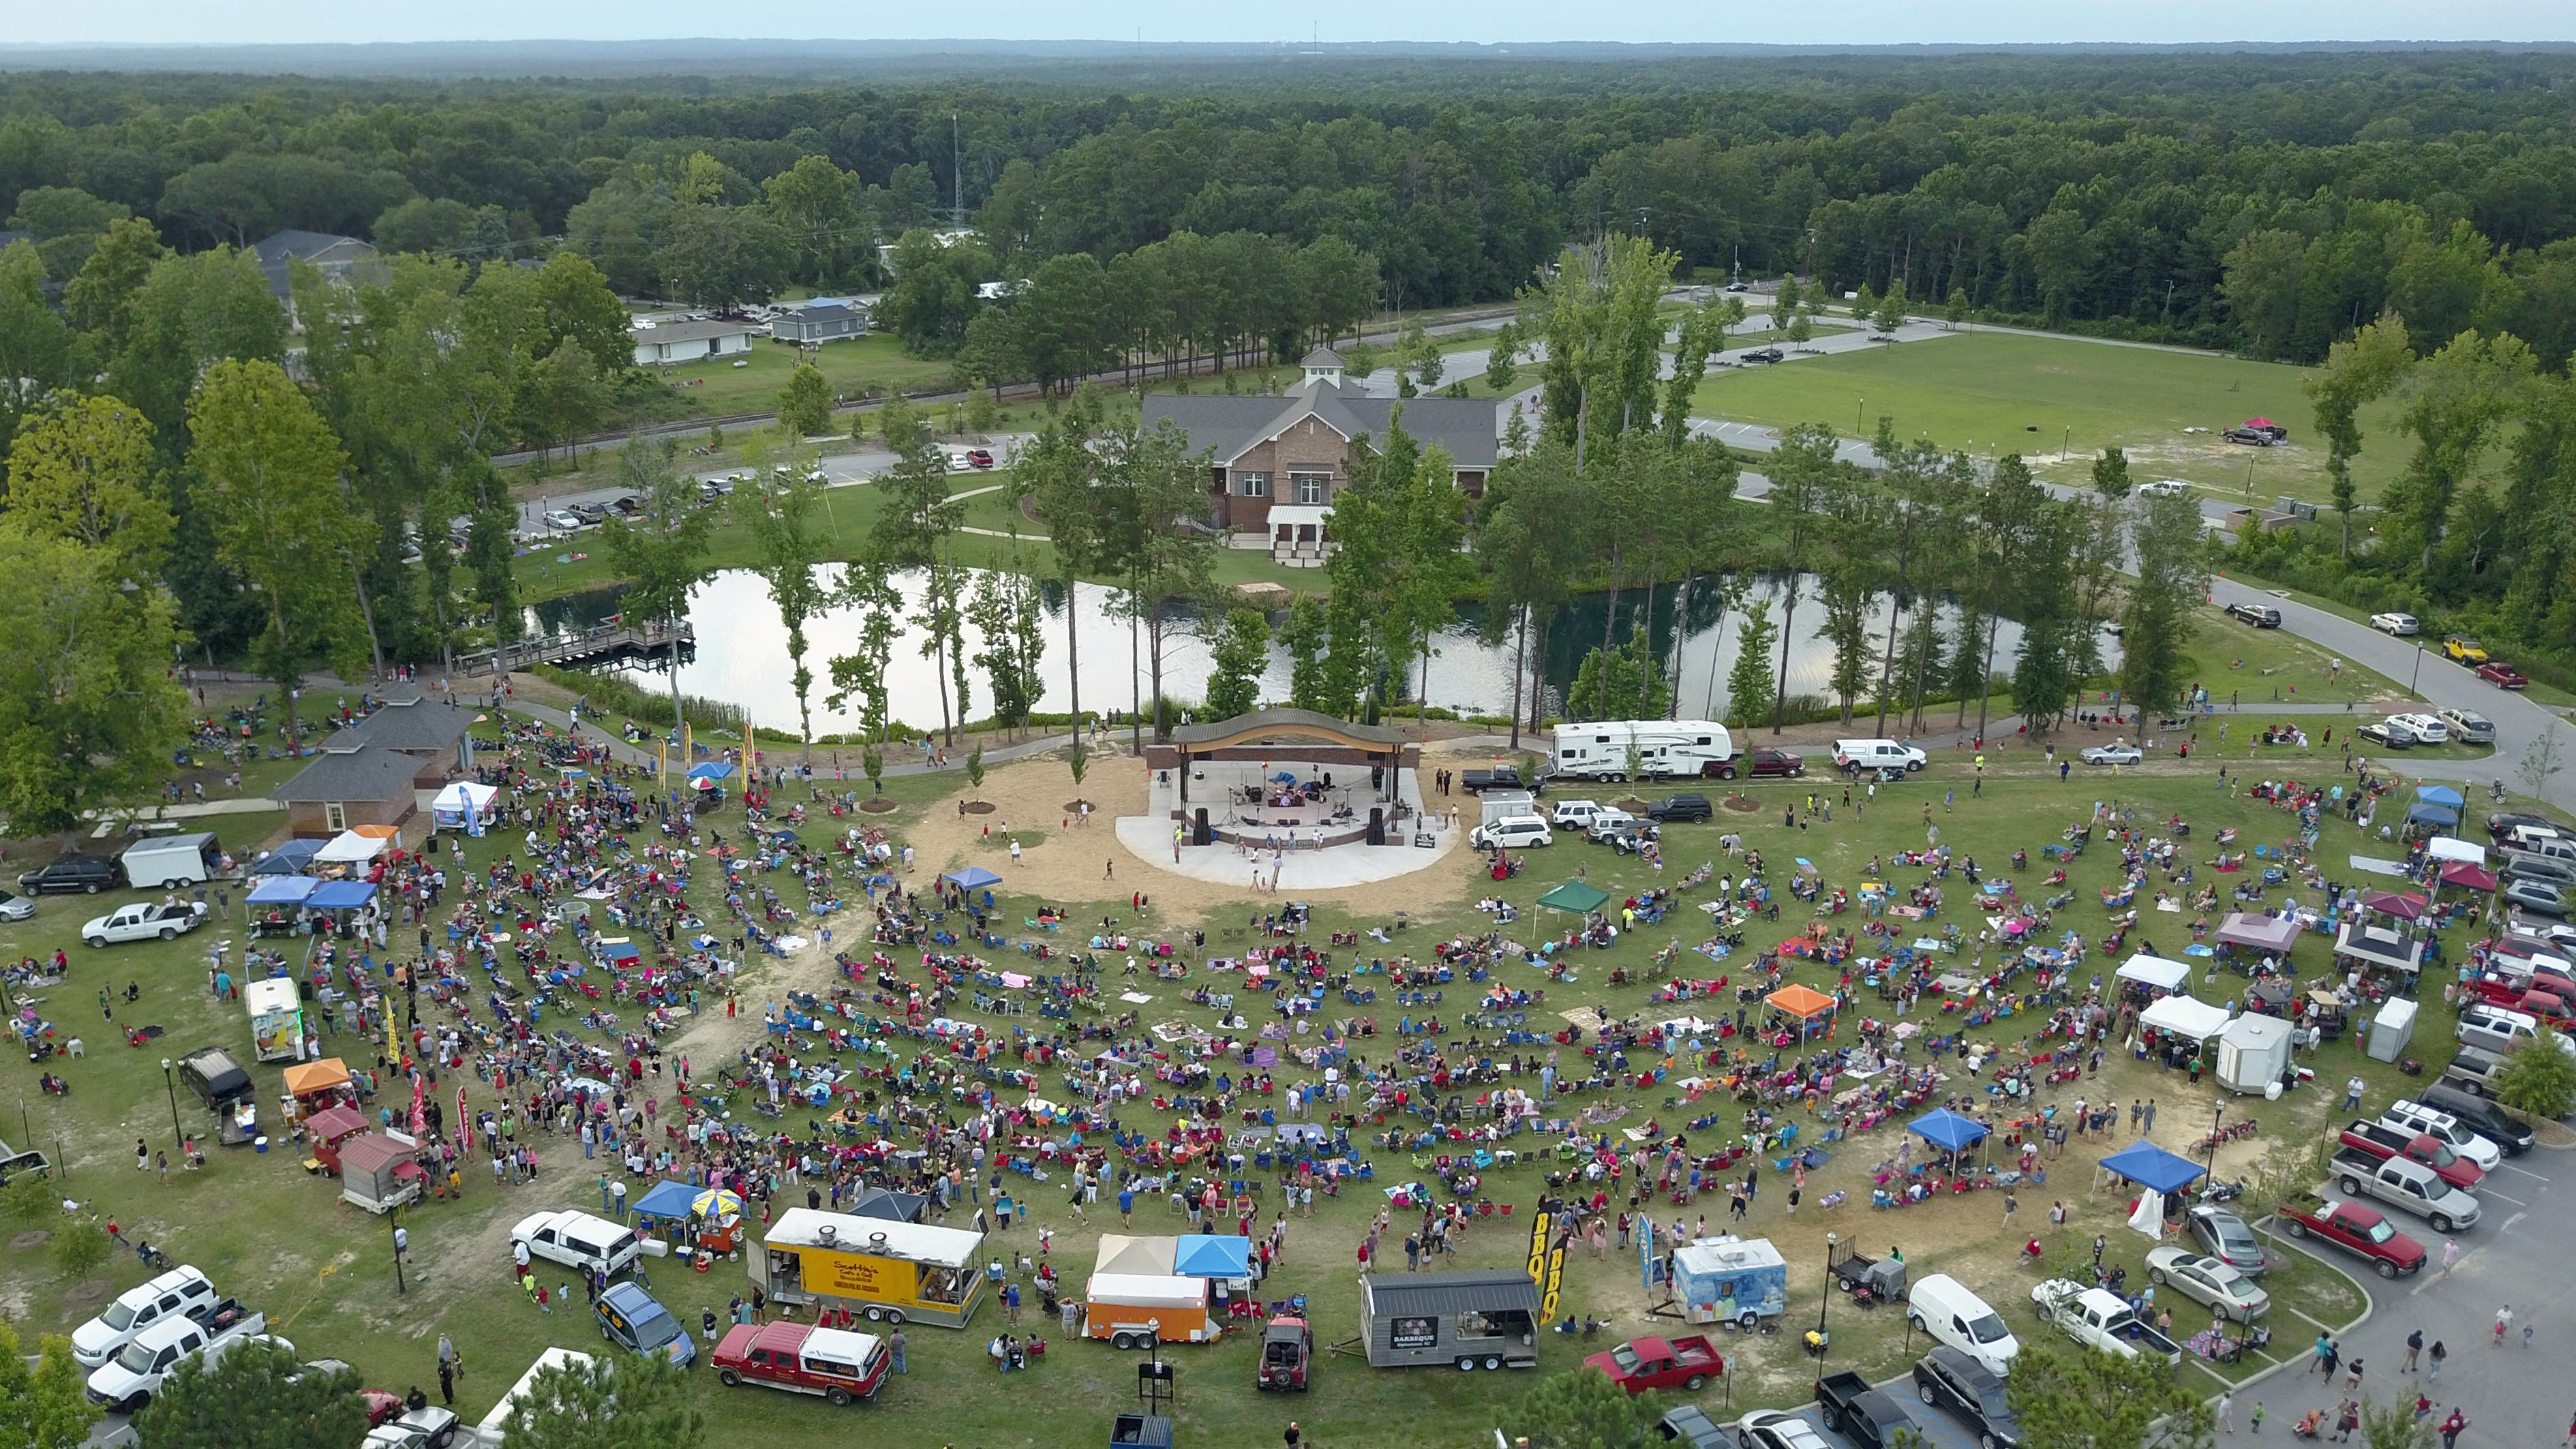 20170703-Aerial Amphitheater-3 Treetop Photography